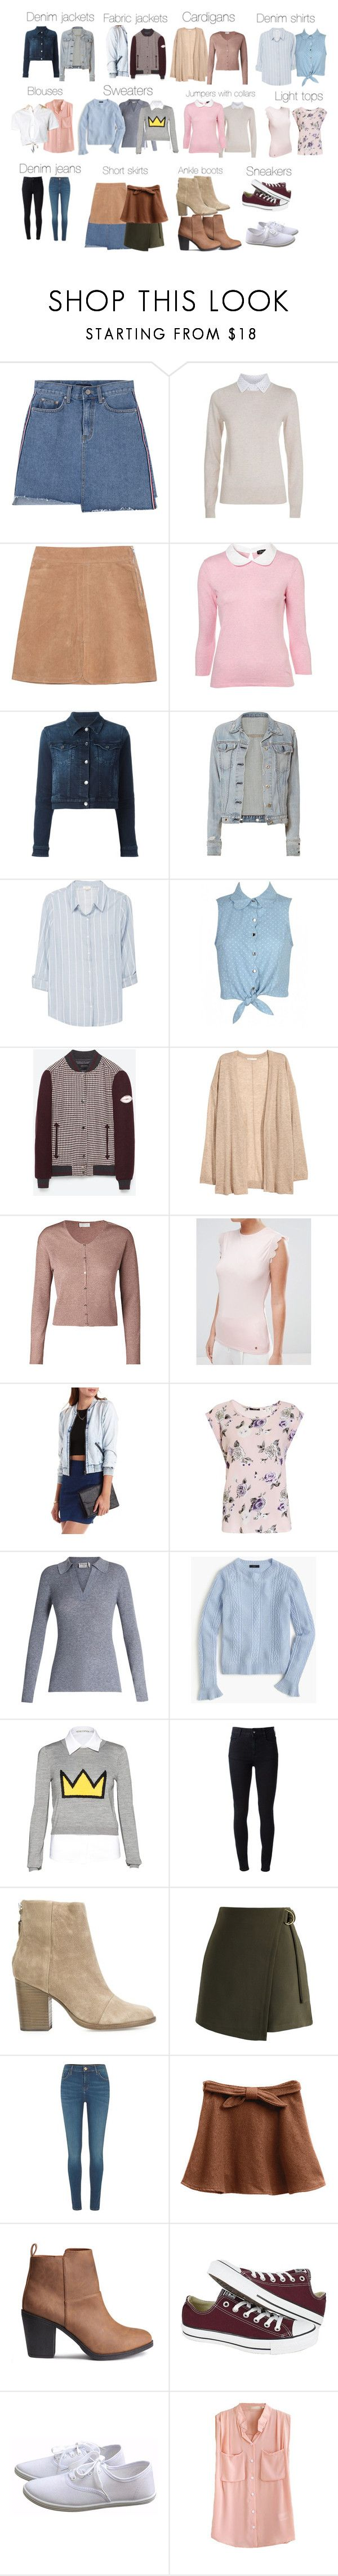 """Betty Cooper basics - Riverdale"" by shadyannon ❤ liked on Polyvore featuring See by Chloé, Dolce&Gabbana, rag & bone, Soft Joie, ESCADA, Ted Baker, Charlotte Russe, Frame, J.Crew and Alice + Olivia"